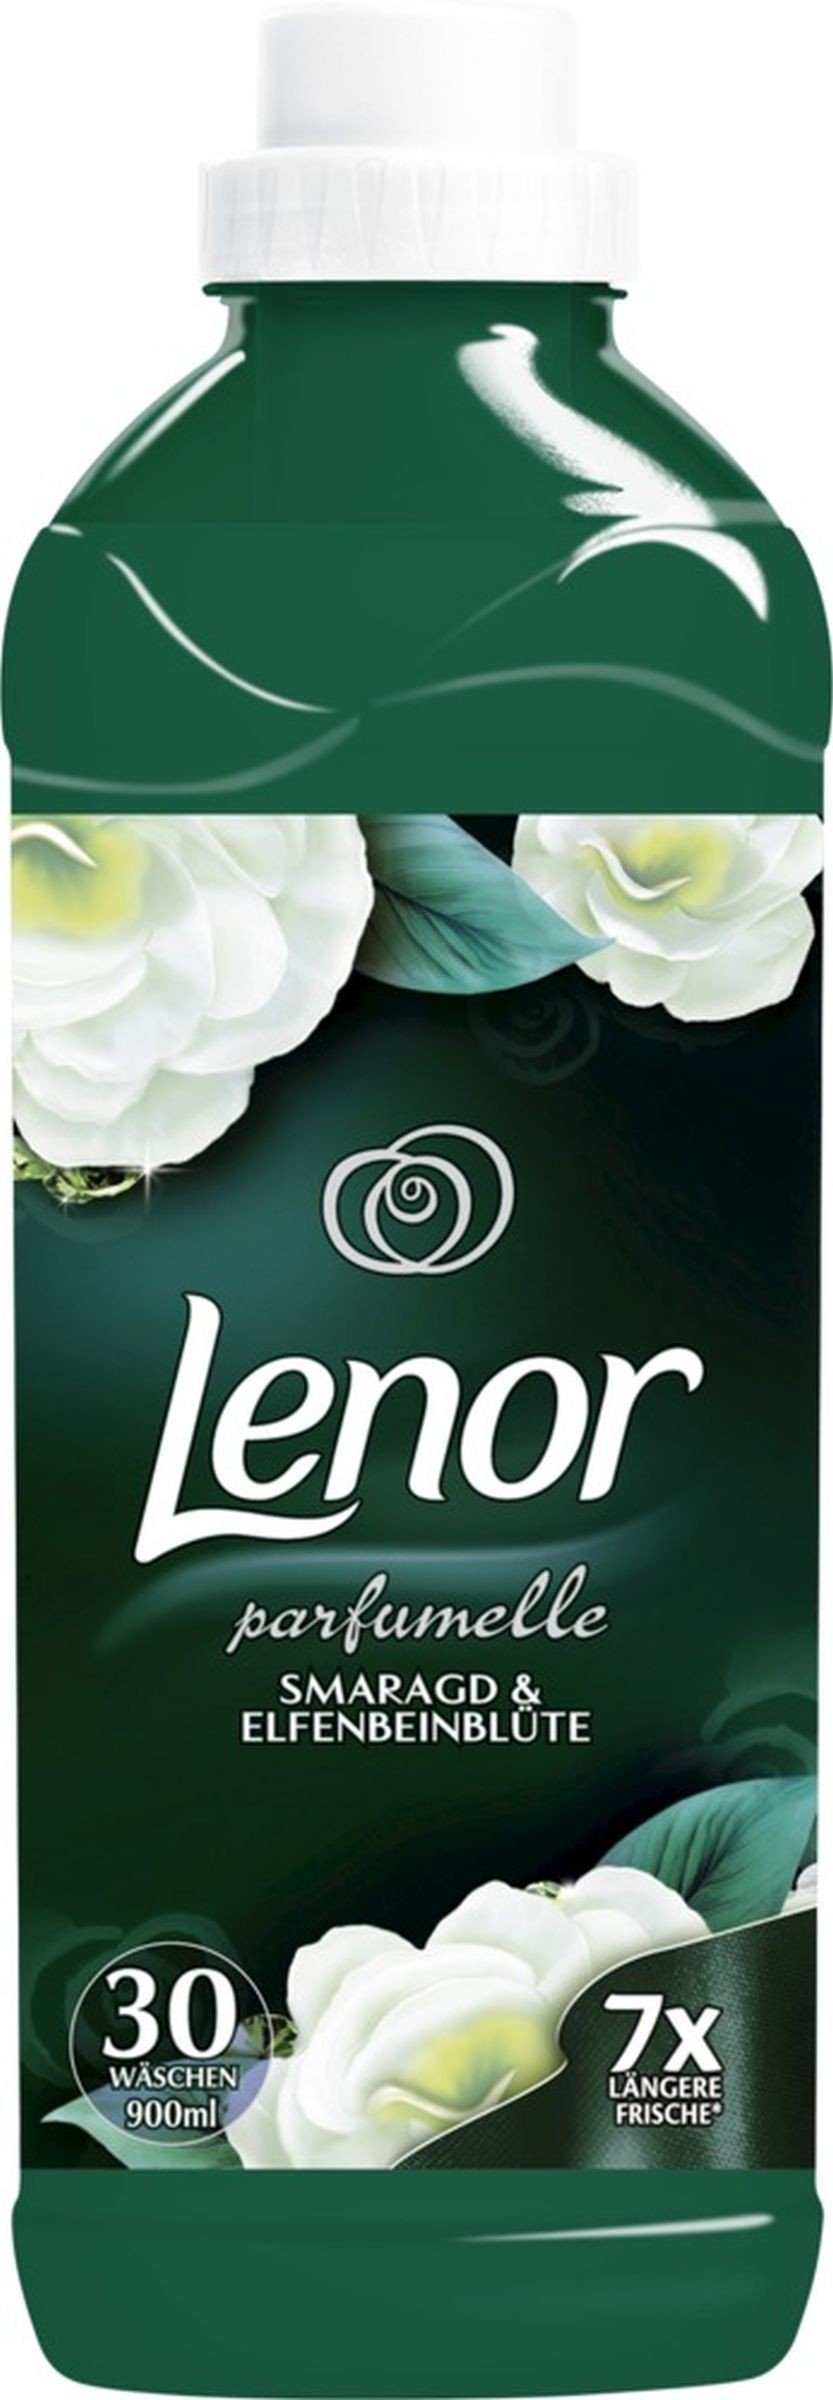 lenor weichsp ler smaragd elfenbeinbl te 900 ml. Black Bedroom Furniture Sets. Home Design Ideas